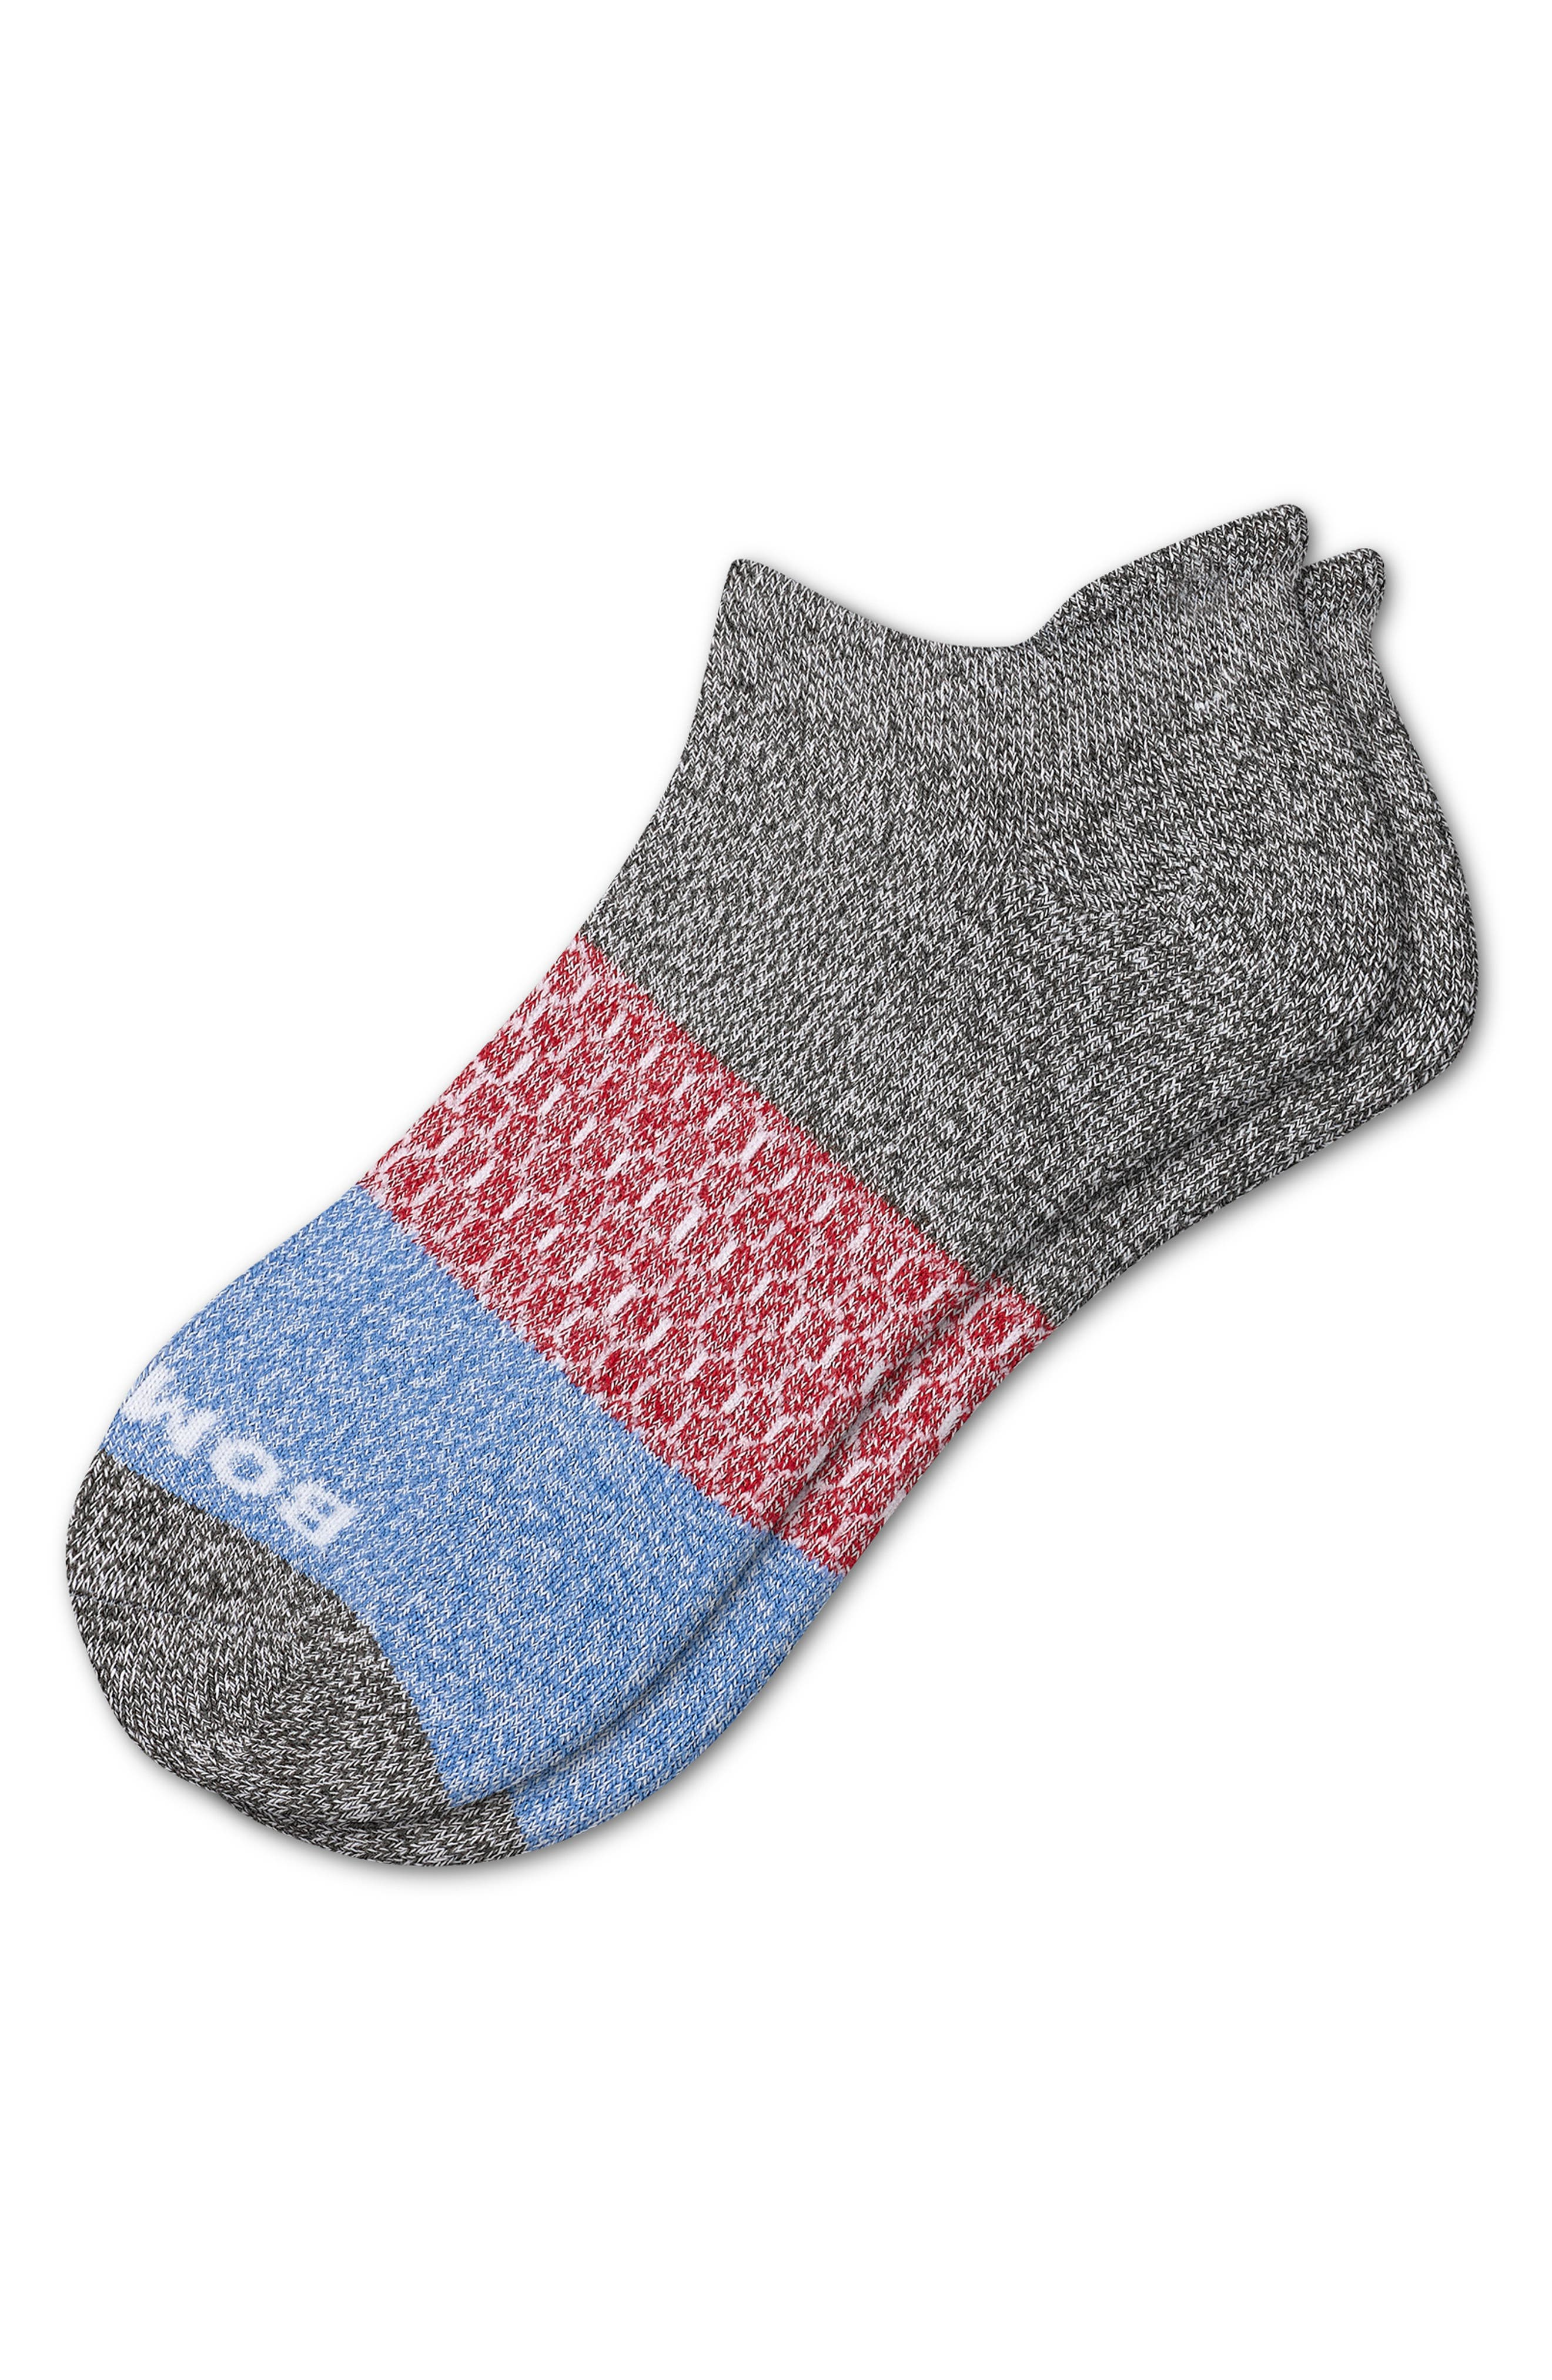 BOMBAS, Colorblock Ankle Socks, Main thumbnail 1, color, GREY CHILI PEPPER